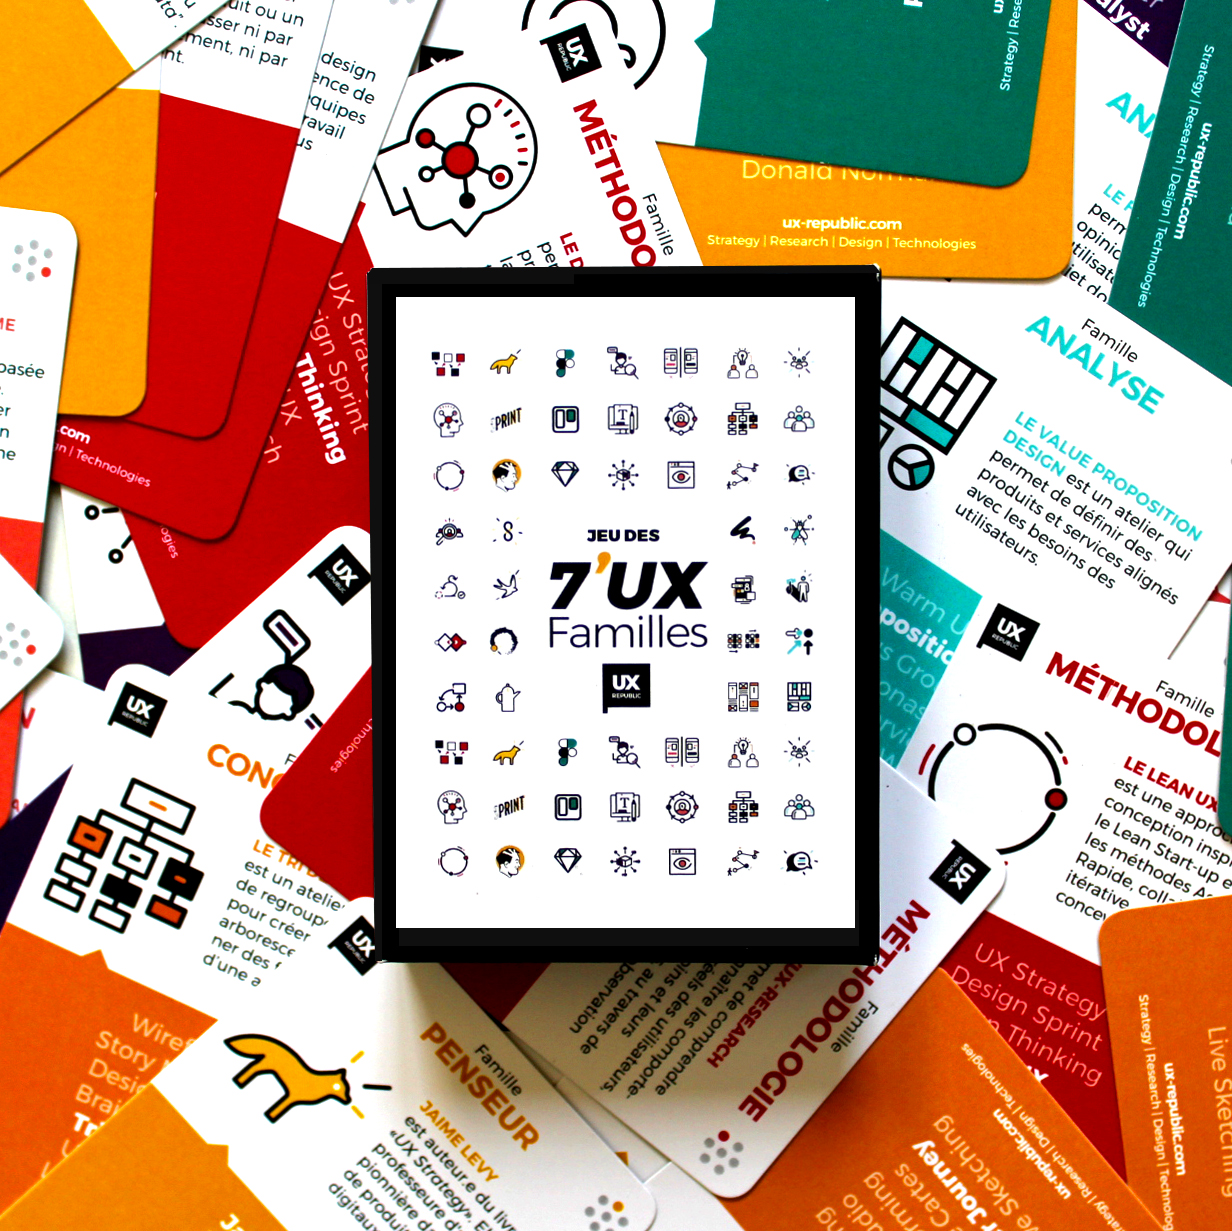 7'UX Family Cards UX-Republic